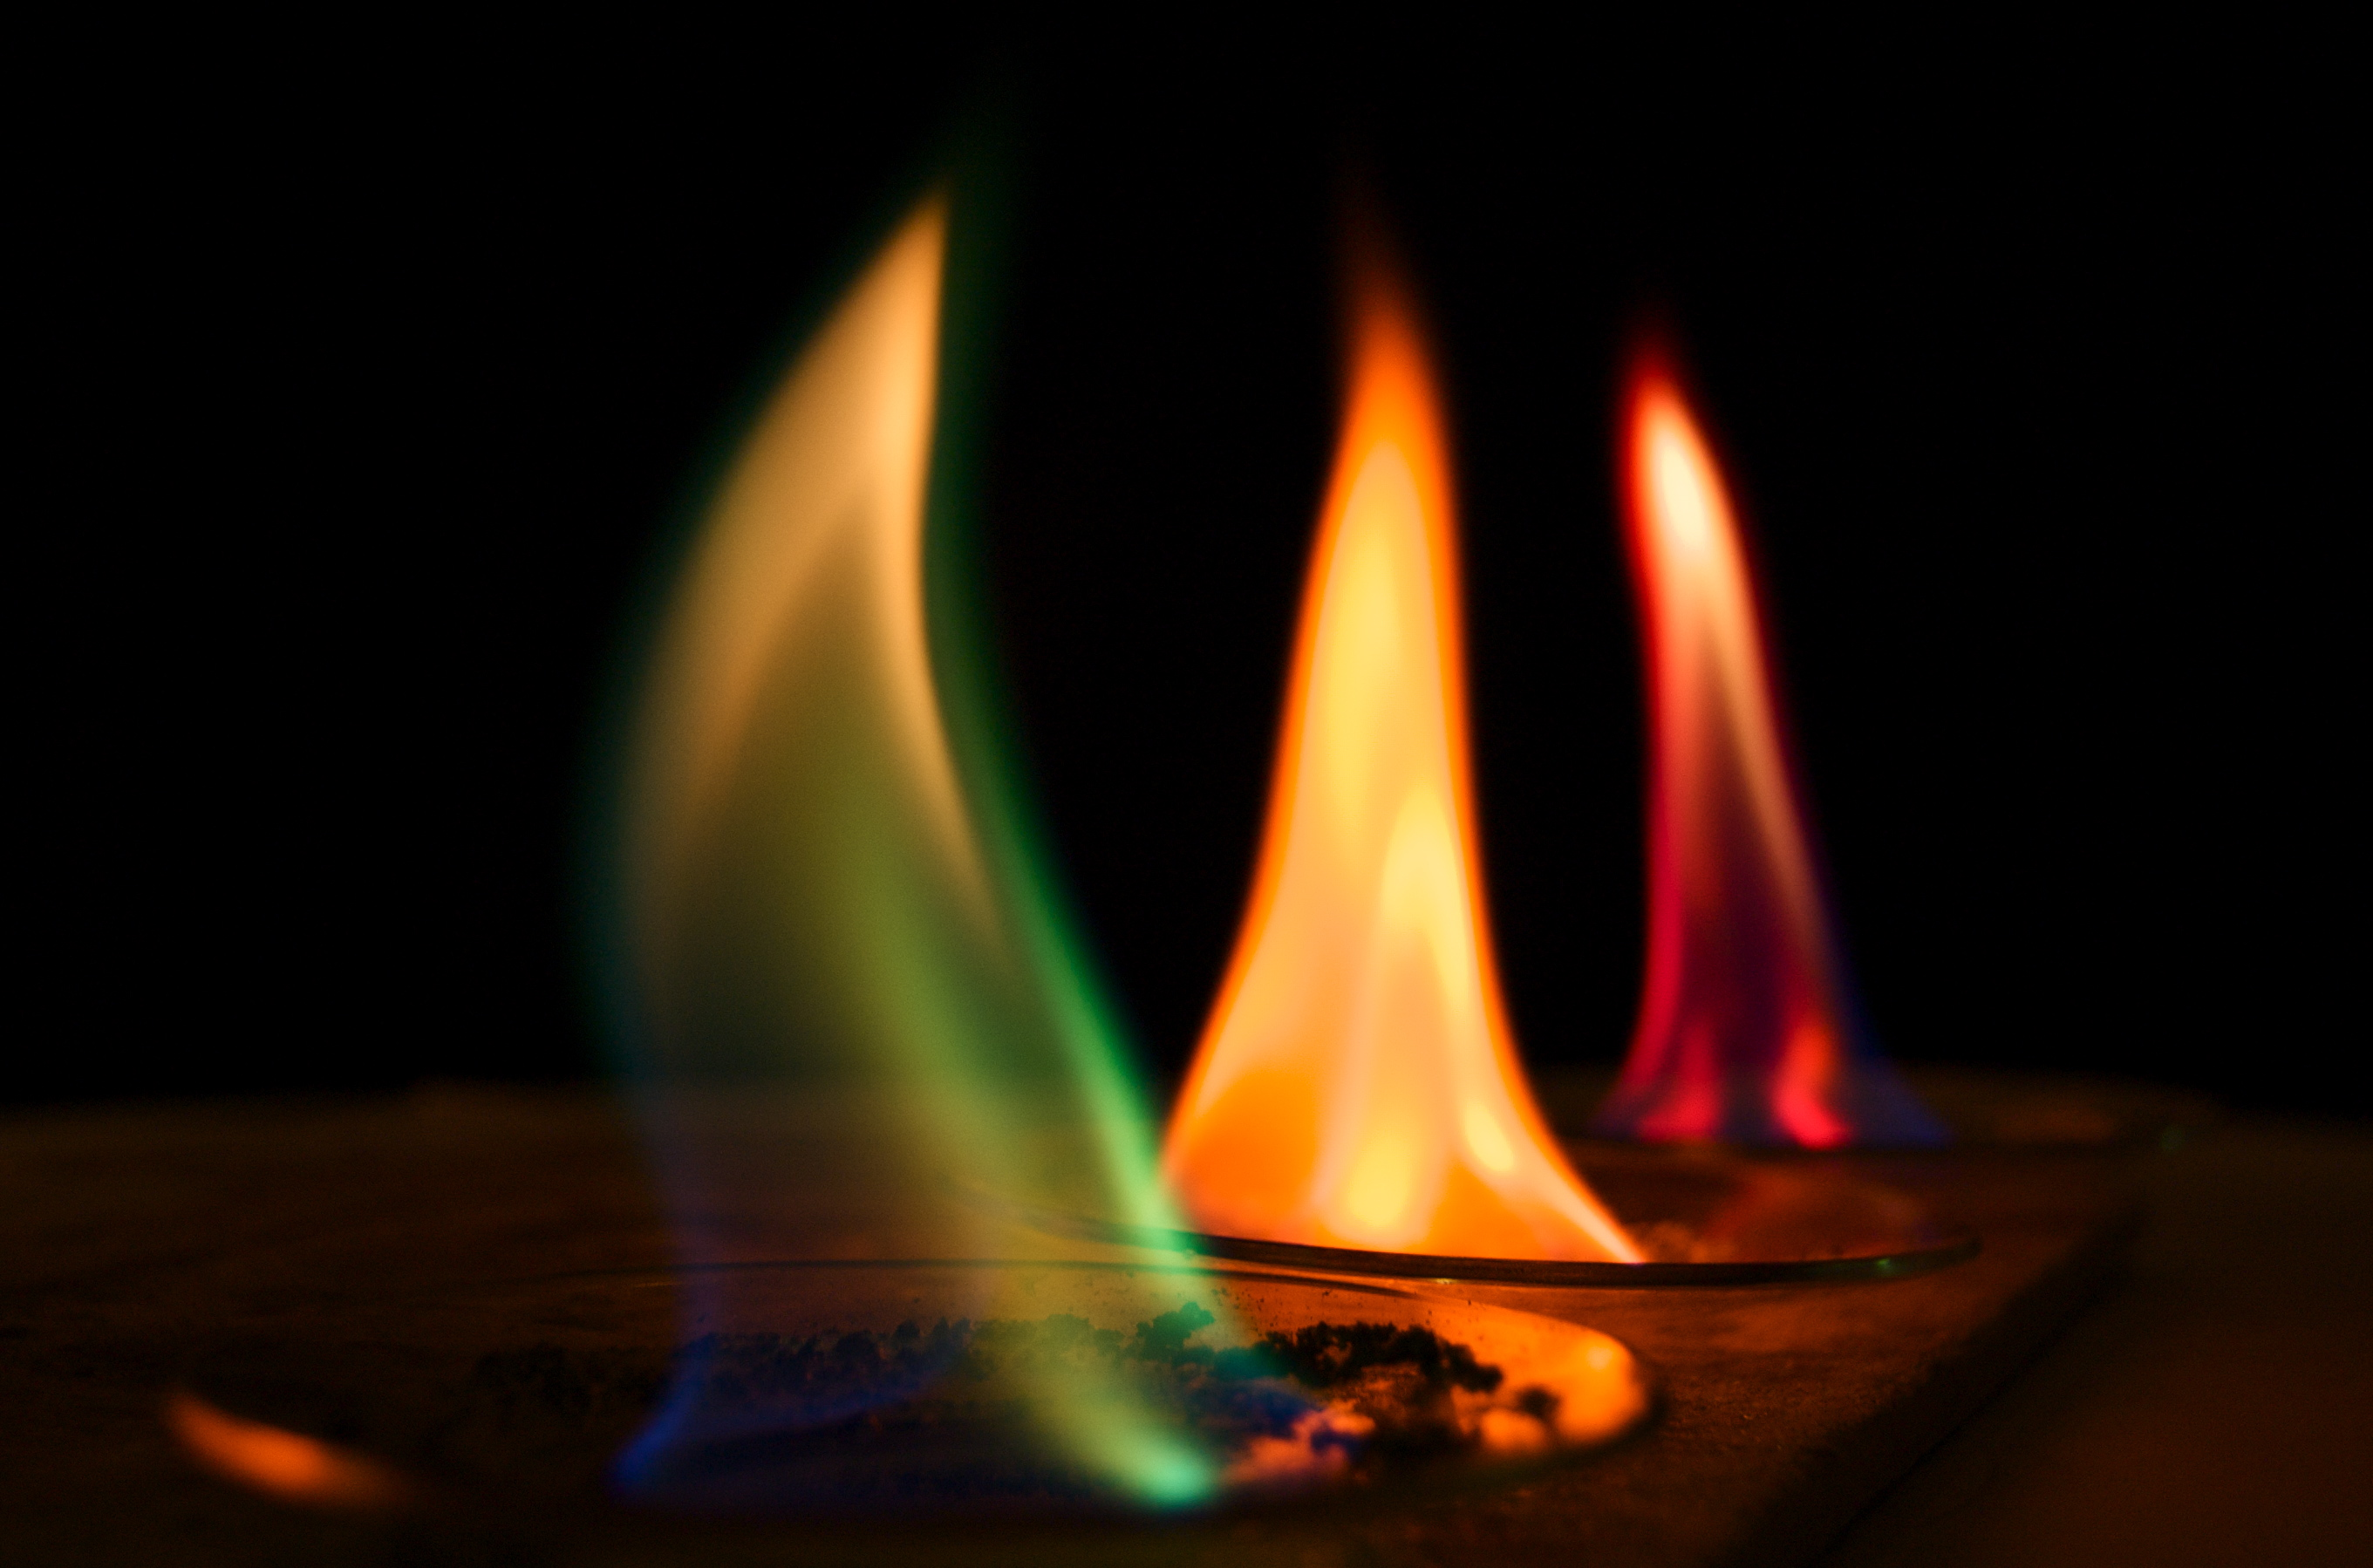 investigate flame colors of different cations Flame tests of metal cations match the flame colors observed to an appropriate wavelength of visible light, and then perform of visible light are manifested as different colors, shown in the color spectrum below (colors can be.